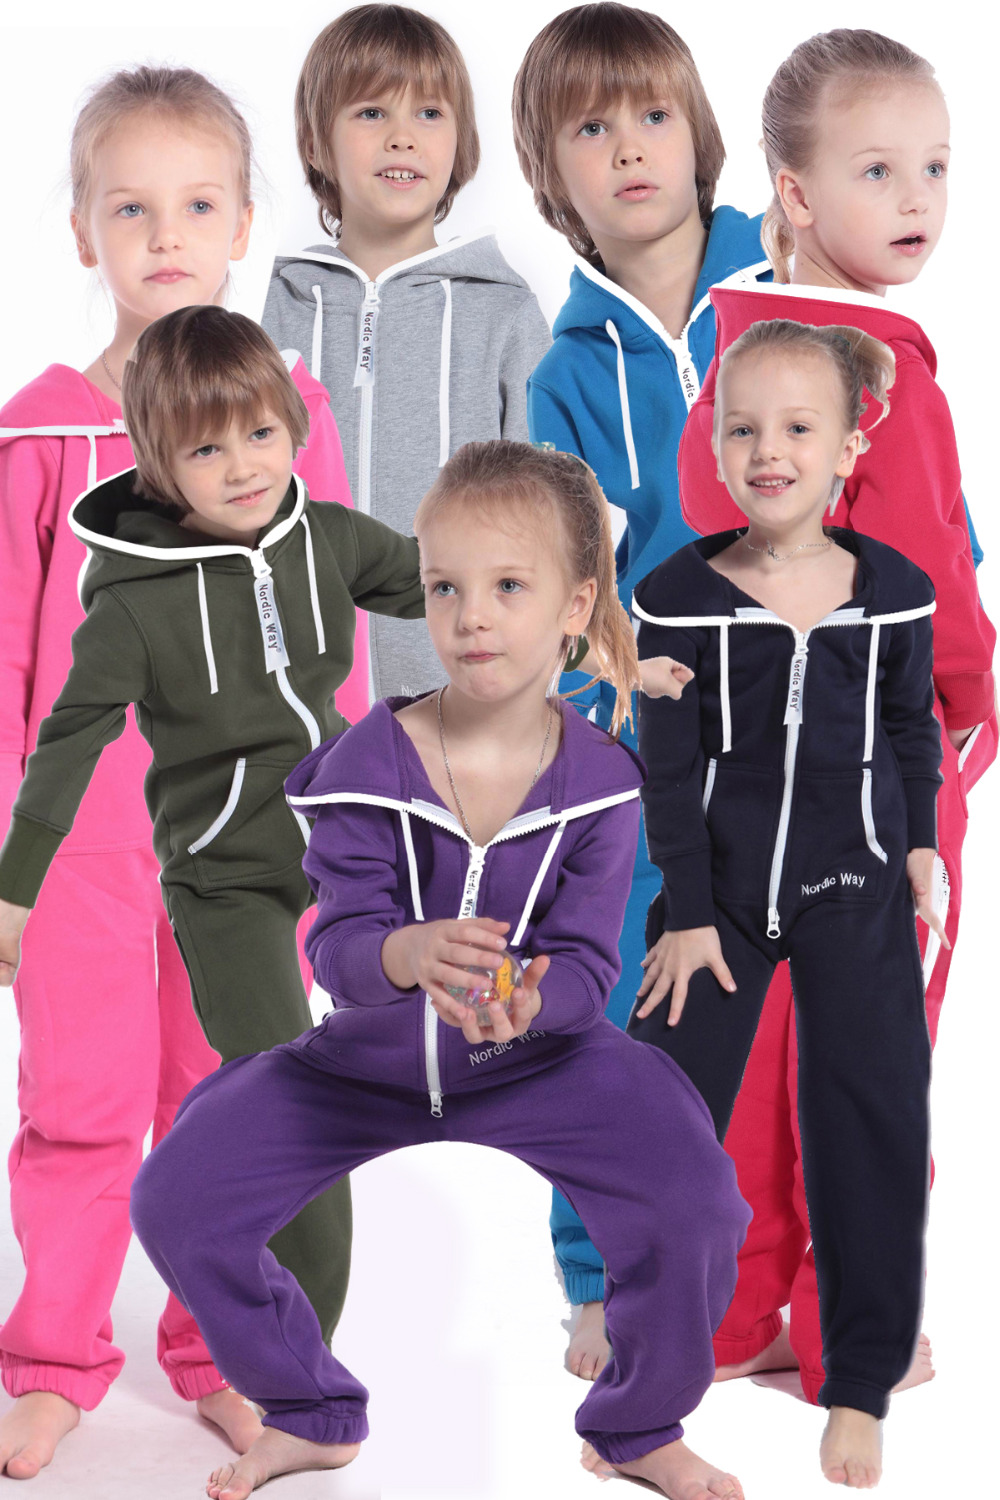 Nordic Way Kid One Piece Jumpsuit Unisex Romper All In Hoodie Fleece Adult Playsuit